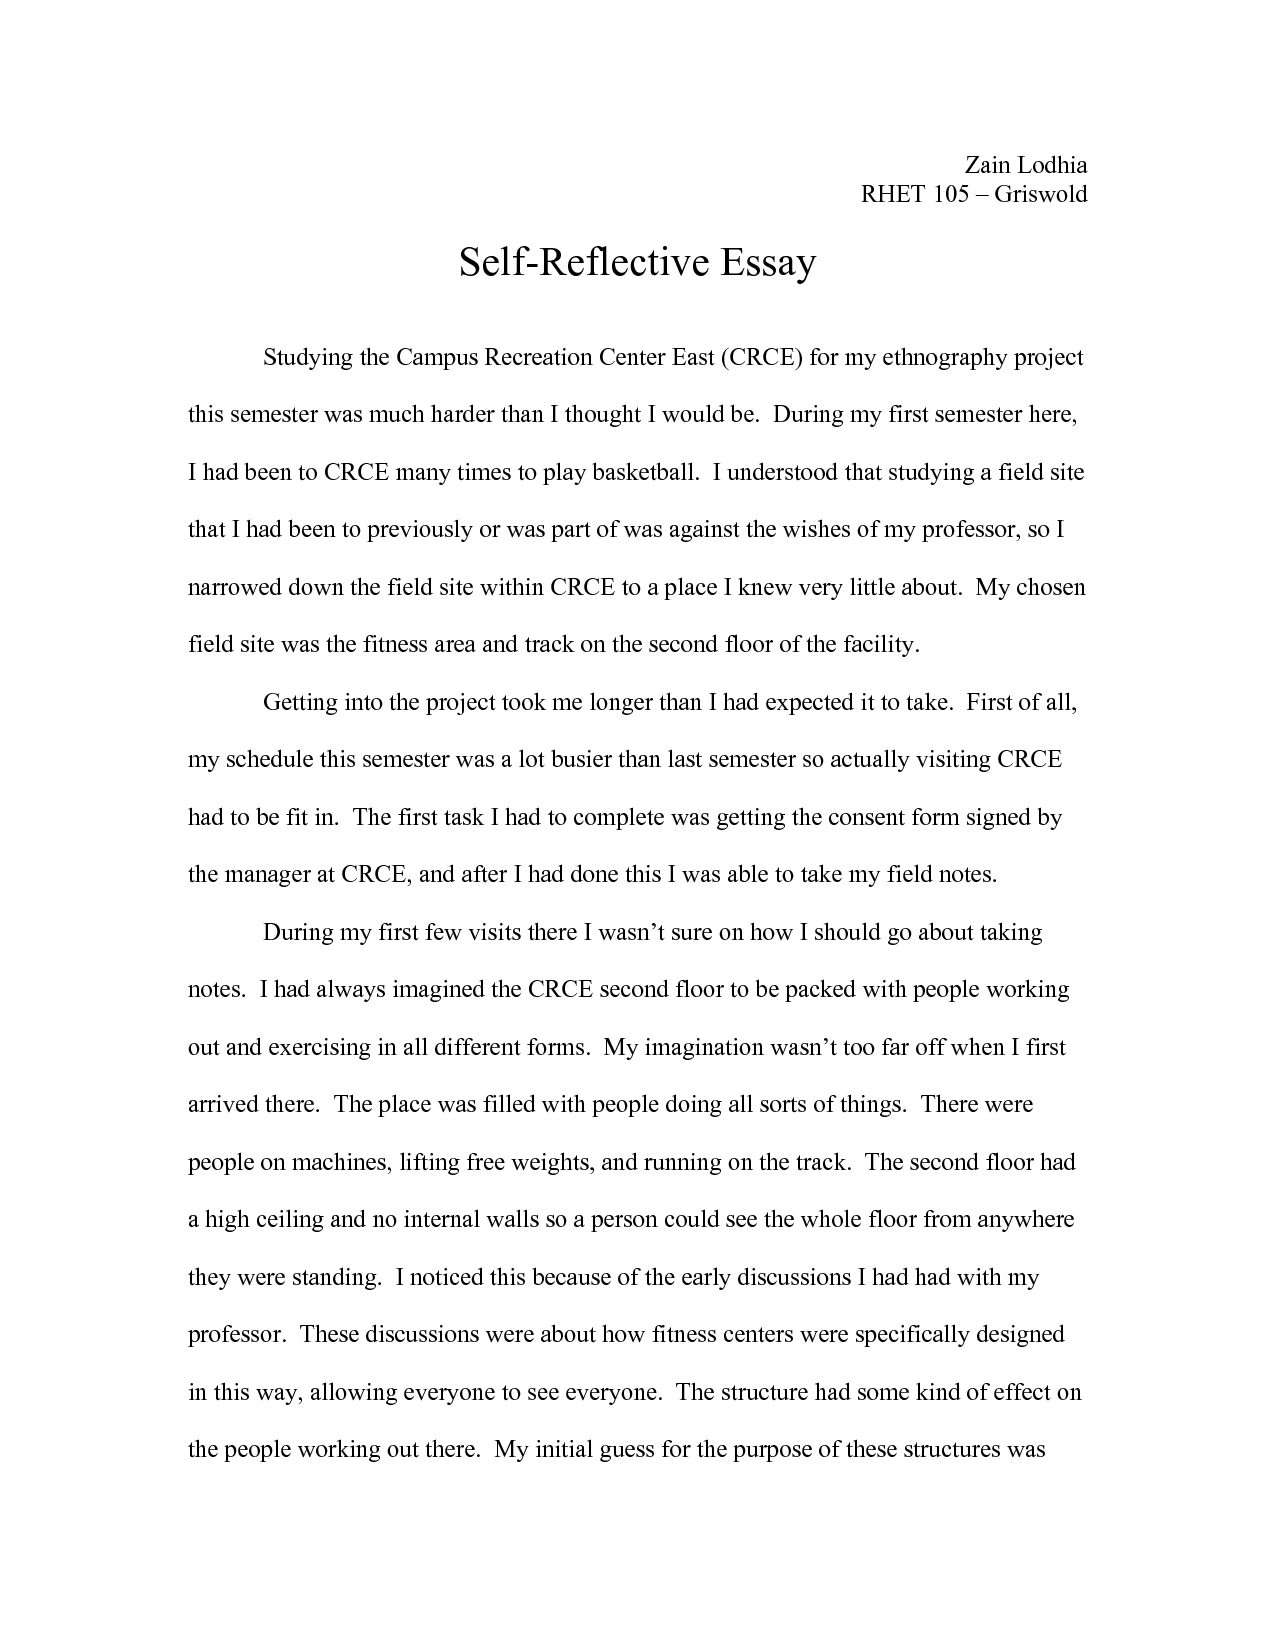 001 Free Sample Essay About Myself Qal0pwnf46 Fascinating Yourself